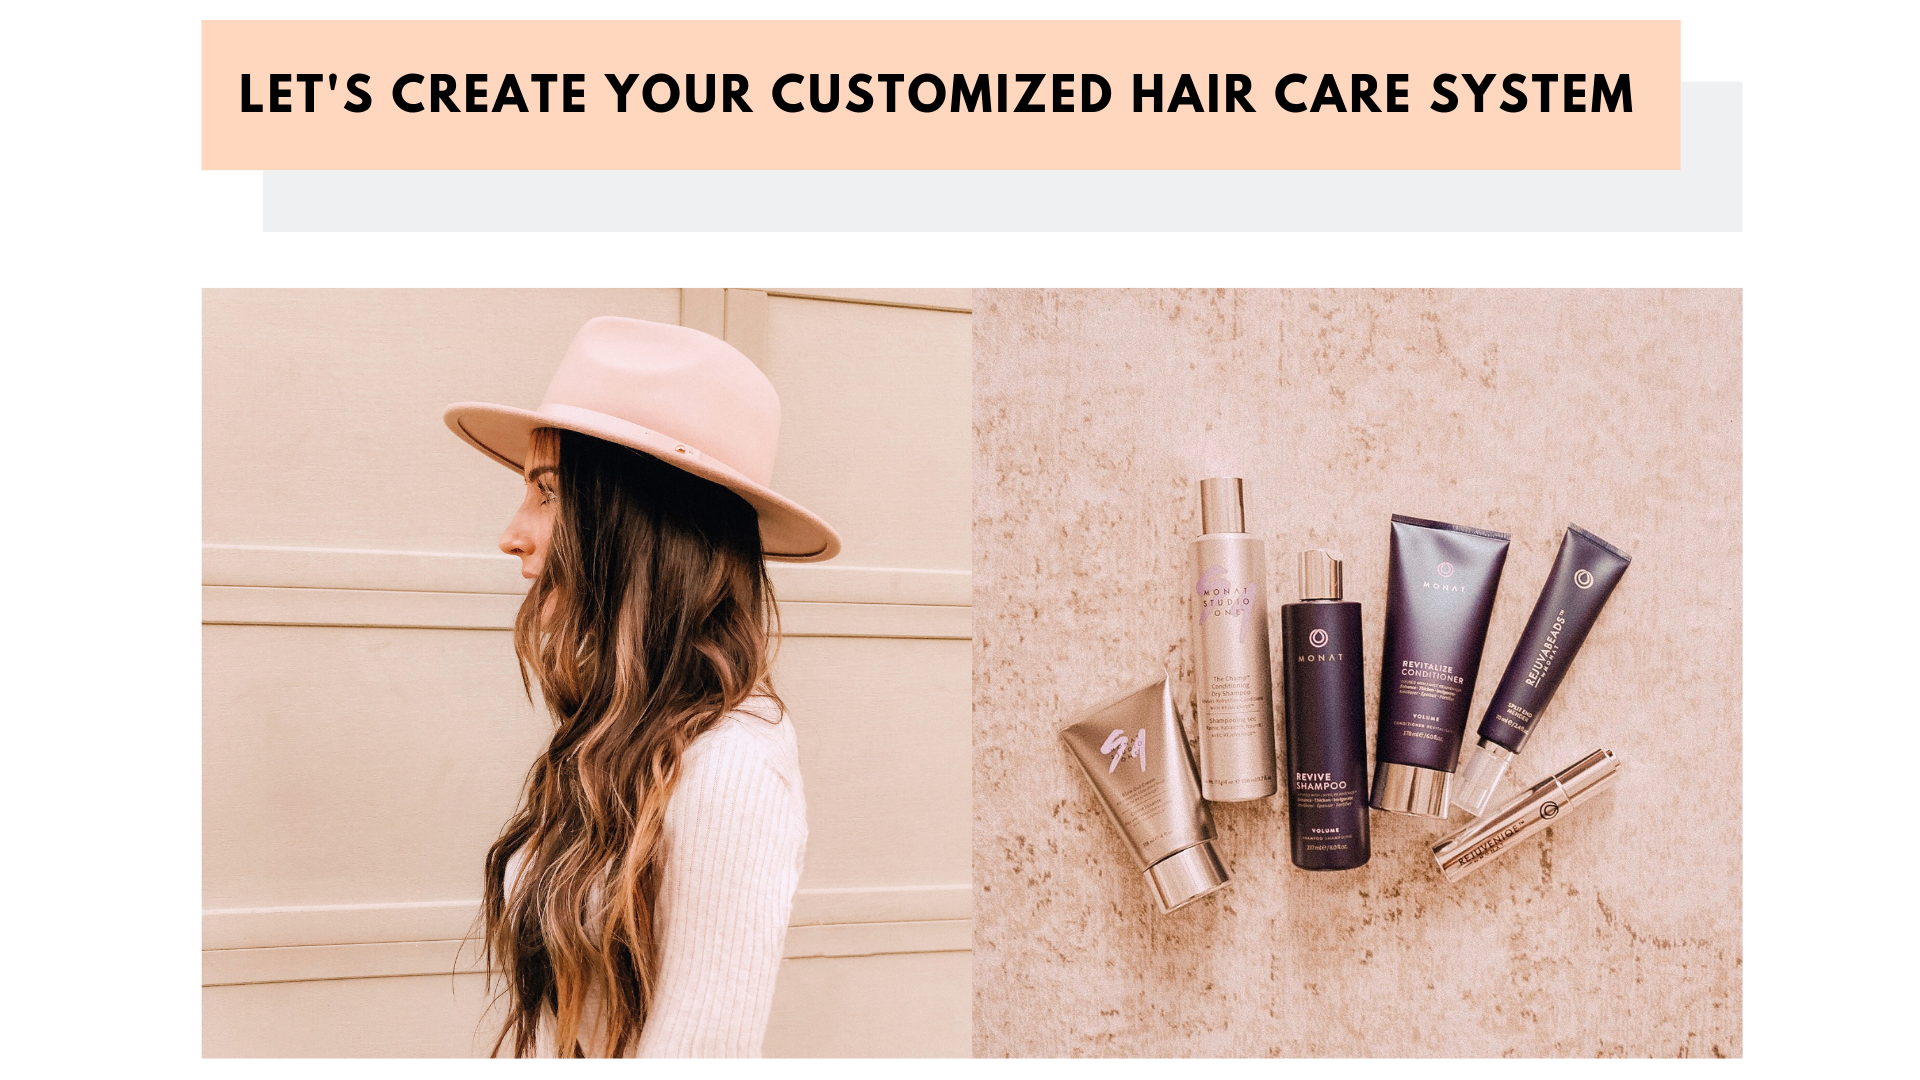 Copy of -let's create your customized hair care system-.png